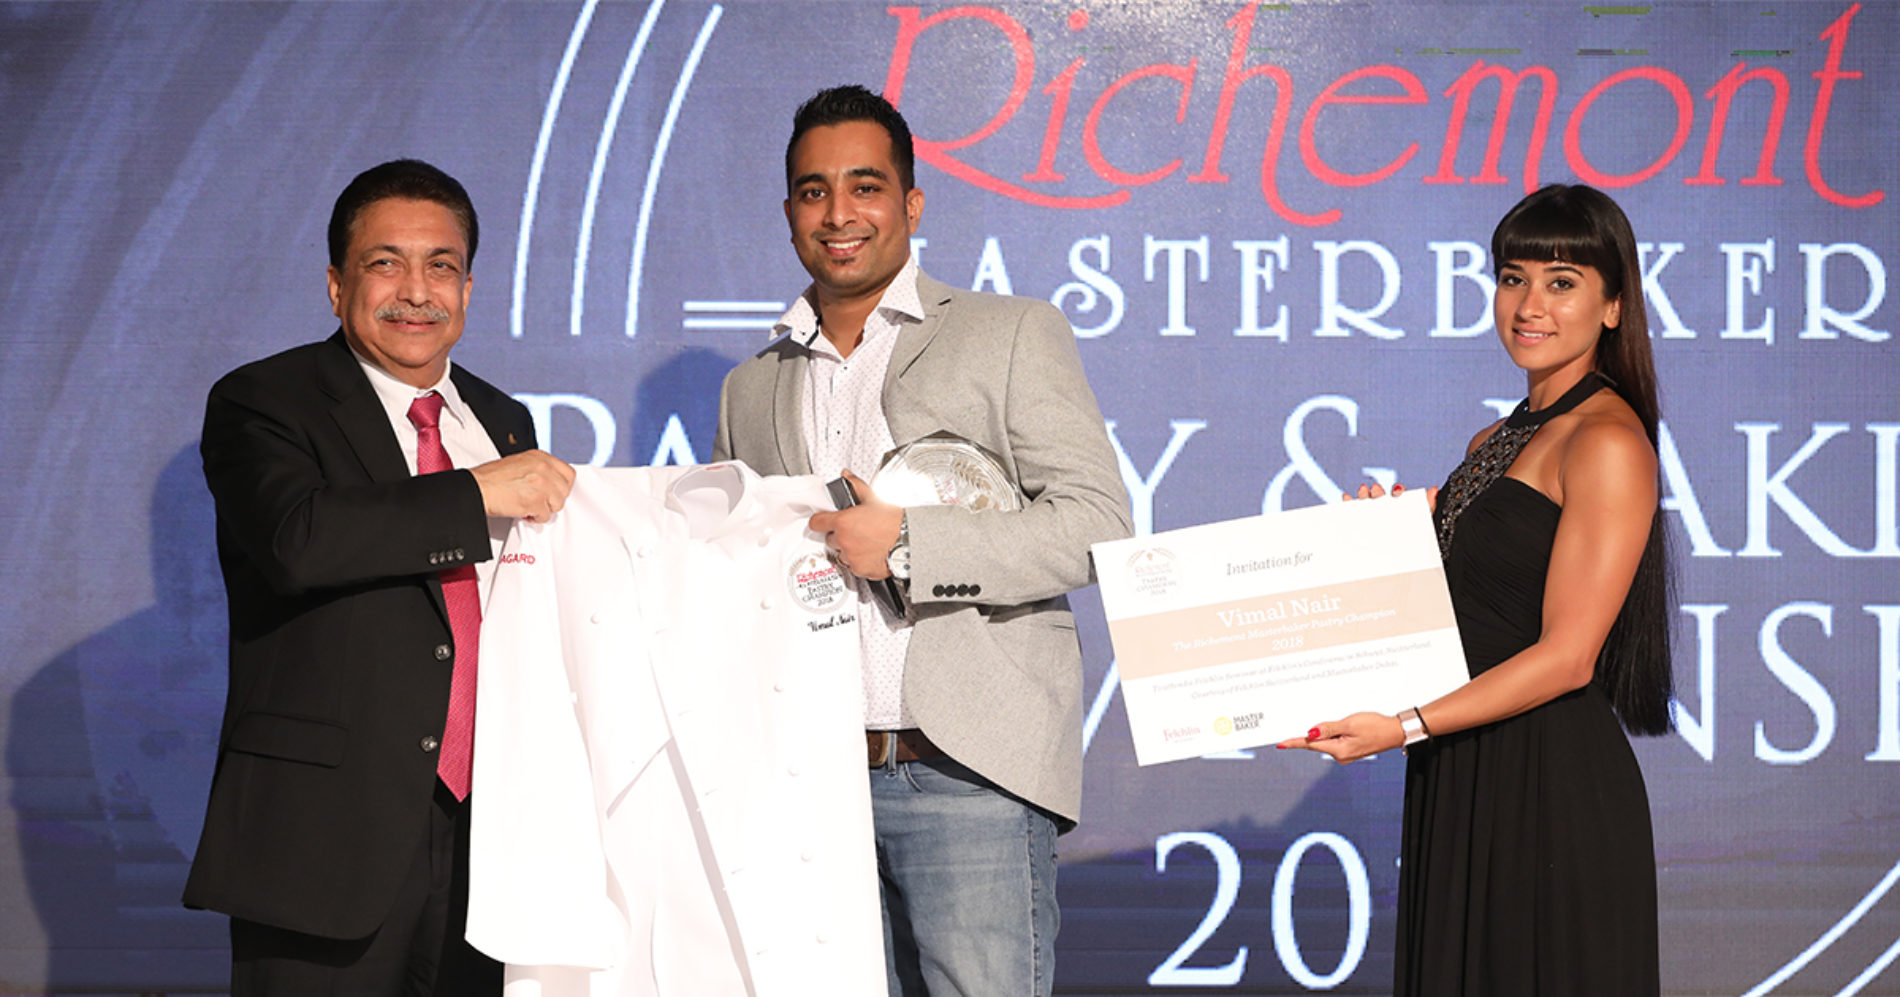 Richemont Masterbaker crowns its inaugural Pastry & Baking Champions